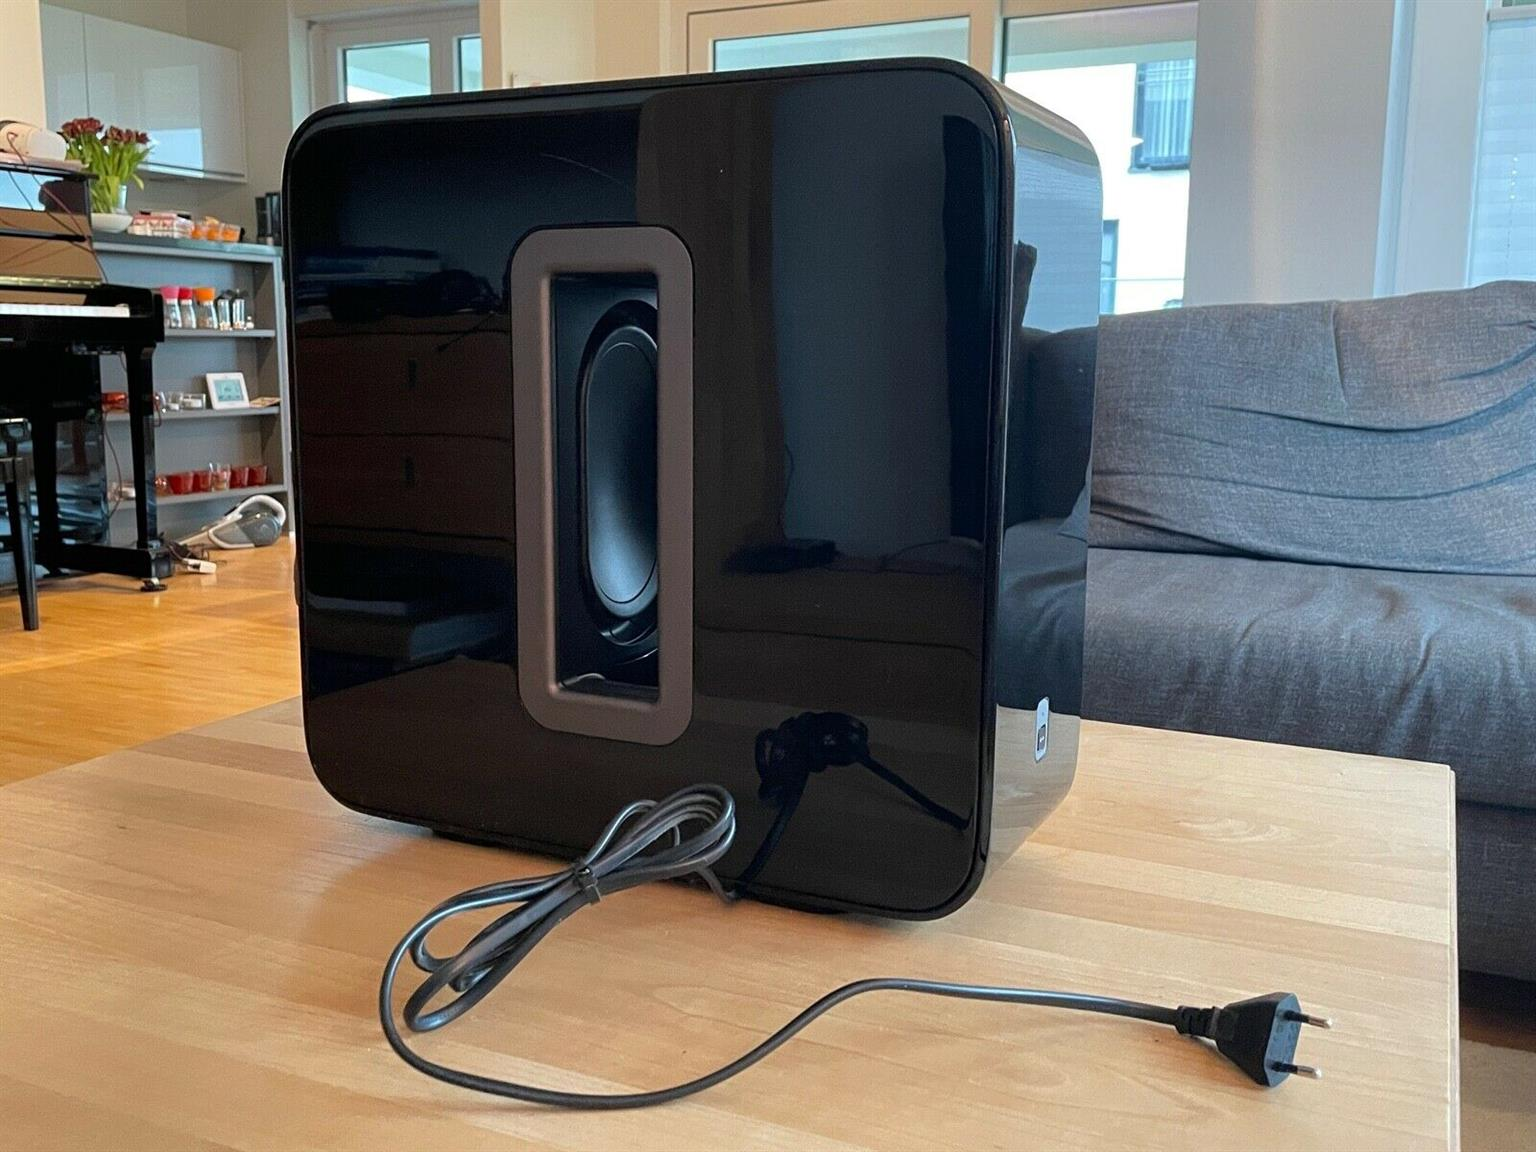 Sonos Sub - WiFi subwoofer for deep bass.